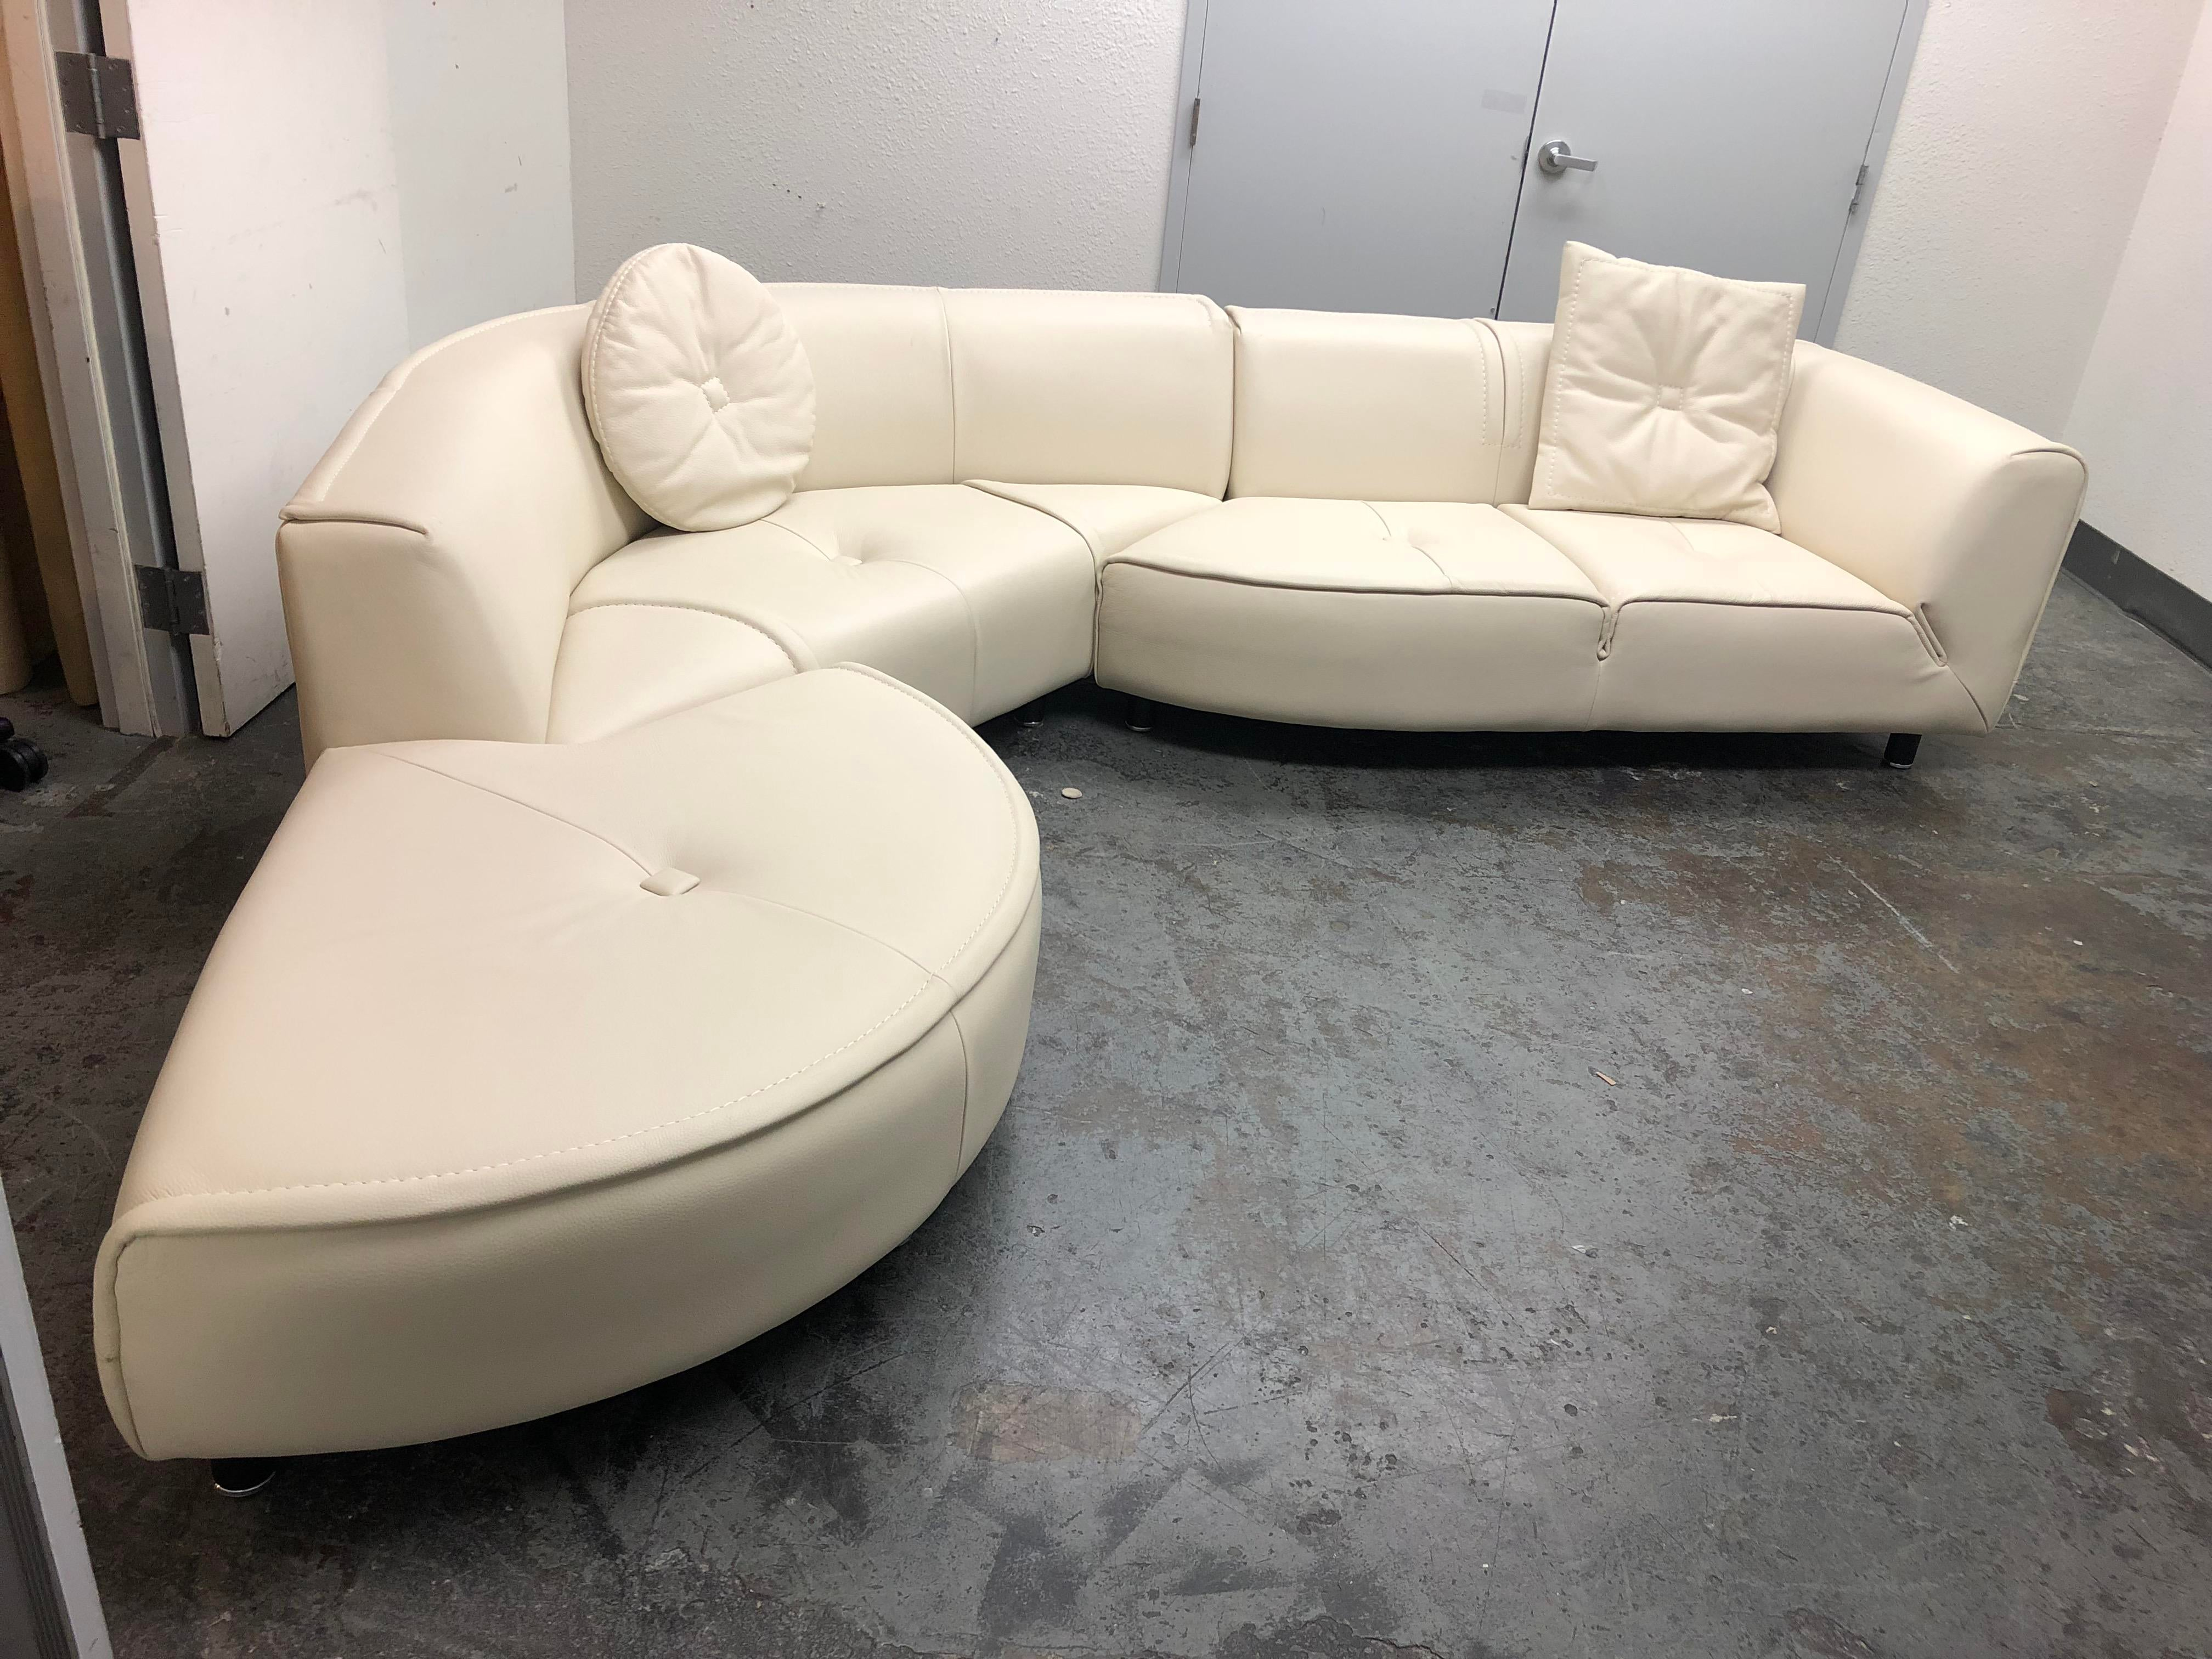 Design Plus Gallery Has A Three Piece Planet Sectional From Gamma Furniture.  Upholstered In A